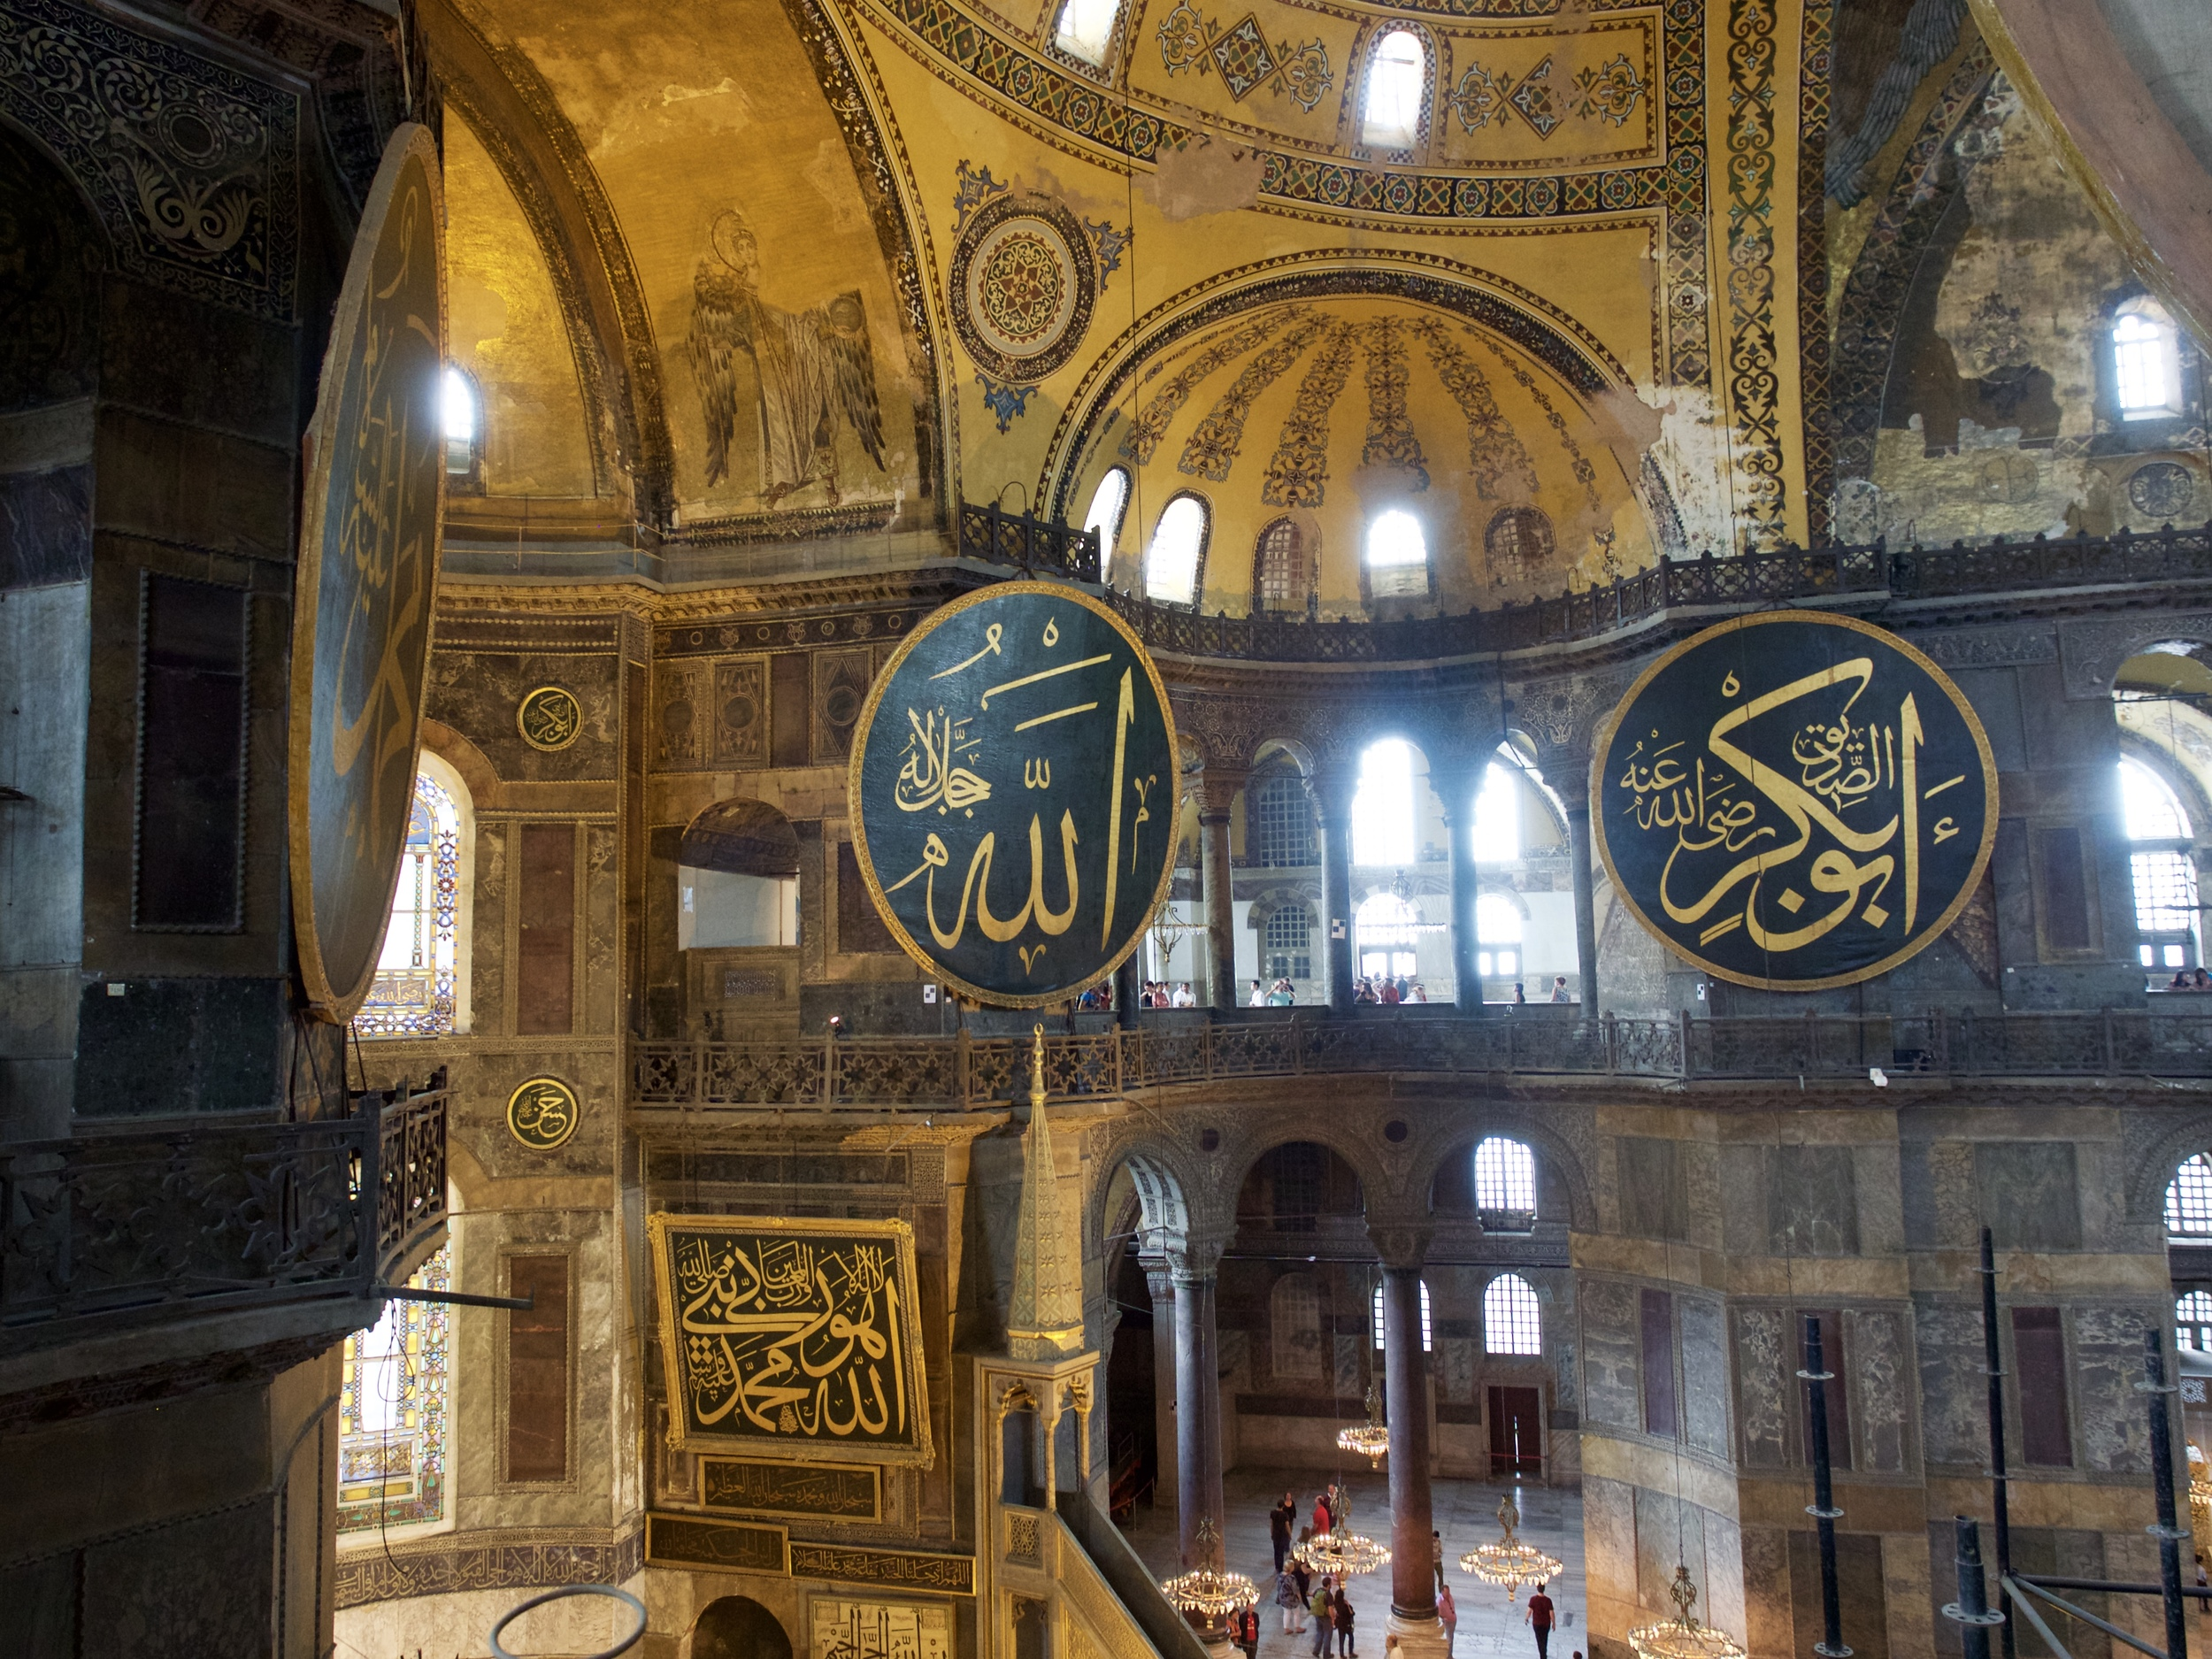 The amount of history that resides inside the Haga Sophia is astounding.